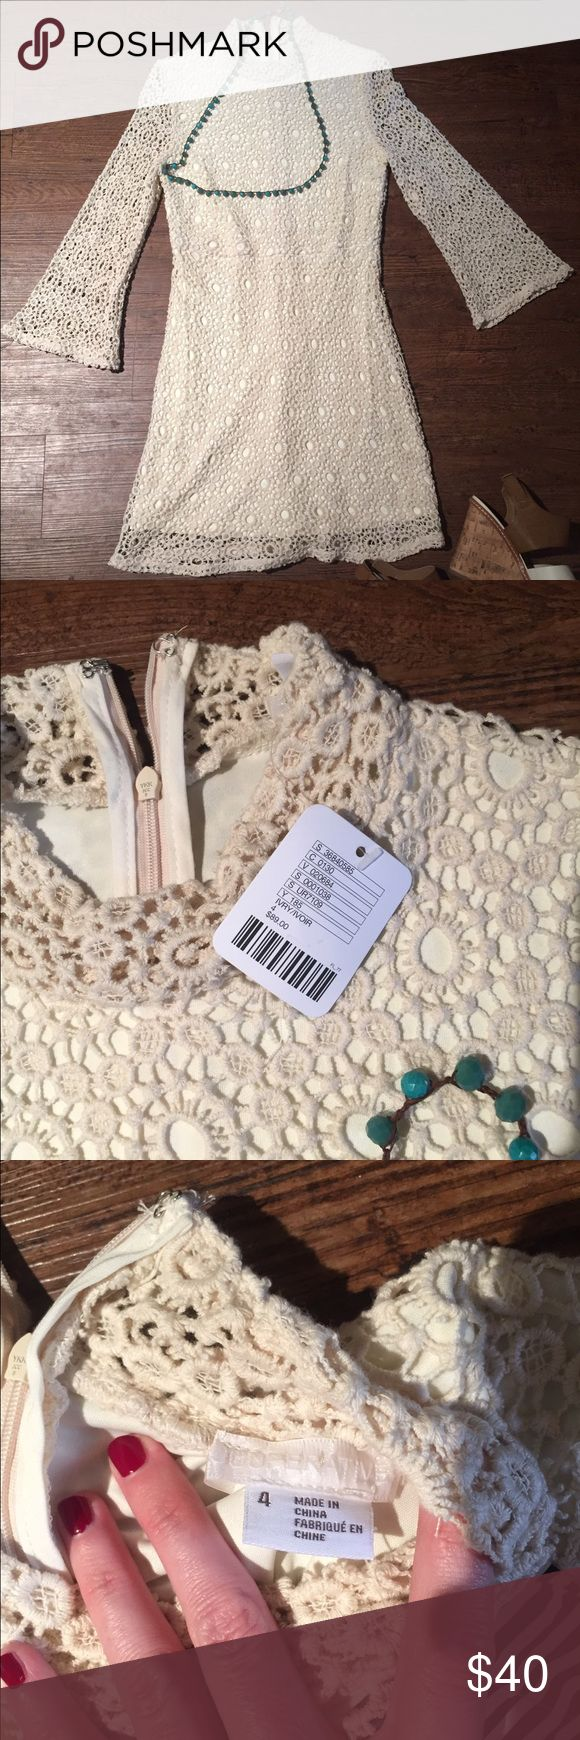 Cooperative UO Cream Mini Dress Adorable cream crochet minidress from Urban Outfitters. Never worn, with tags. Urban Outfitters Dresses Mini